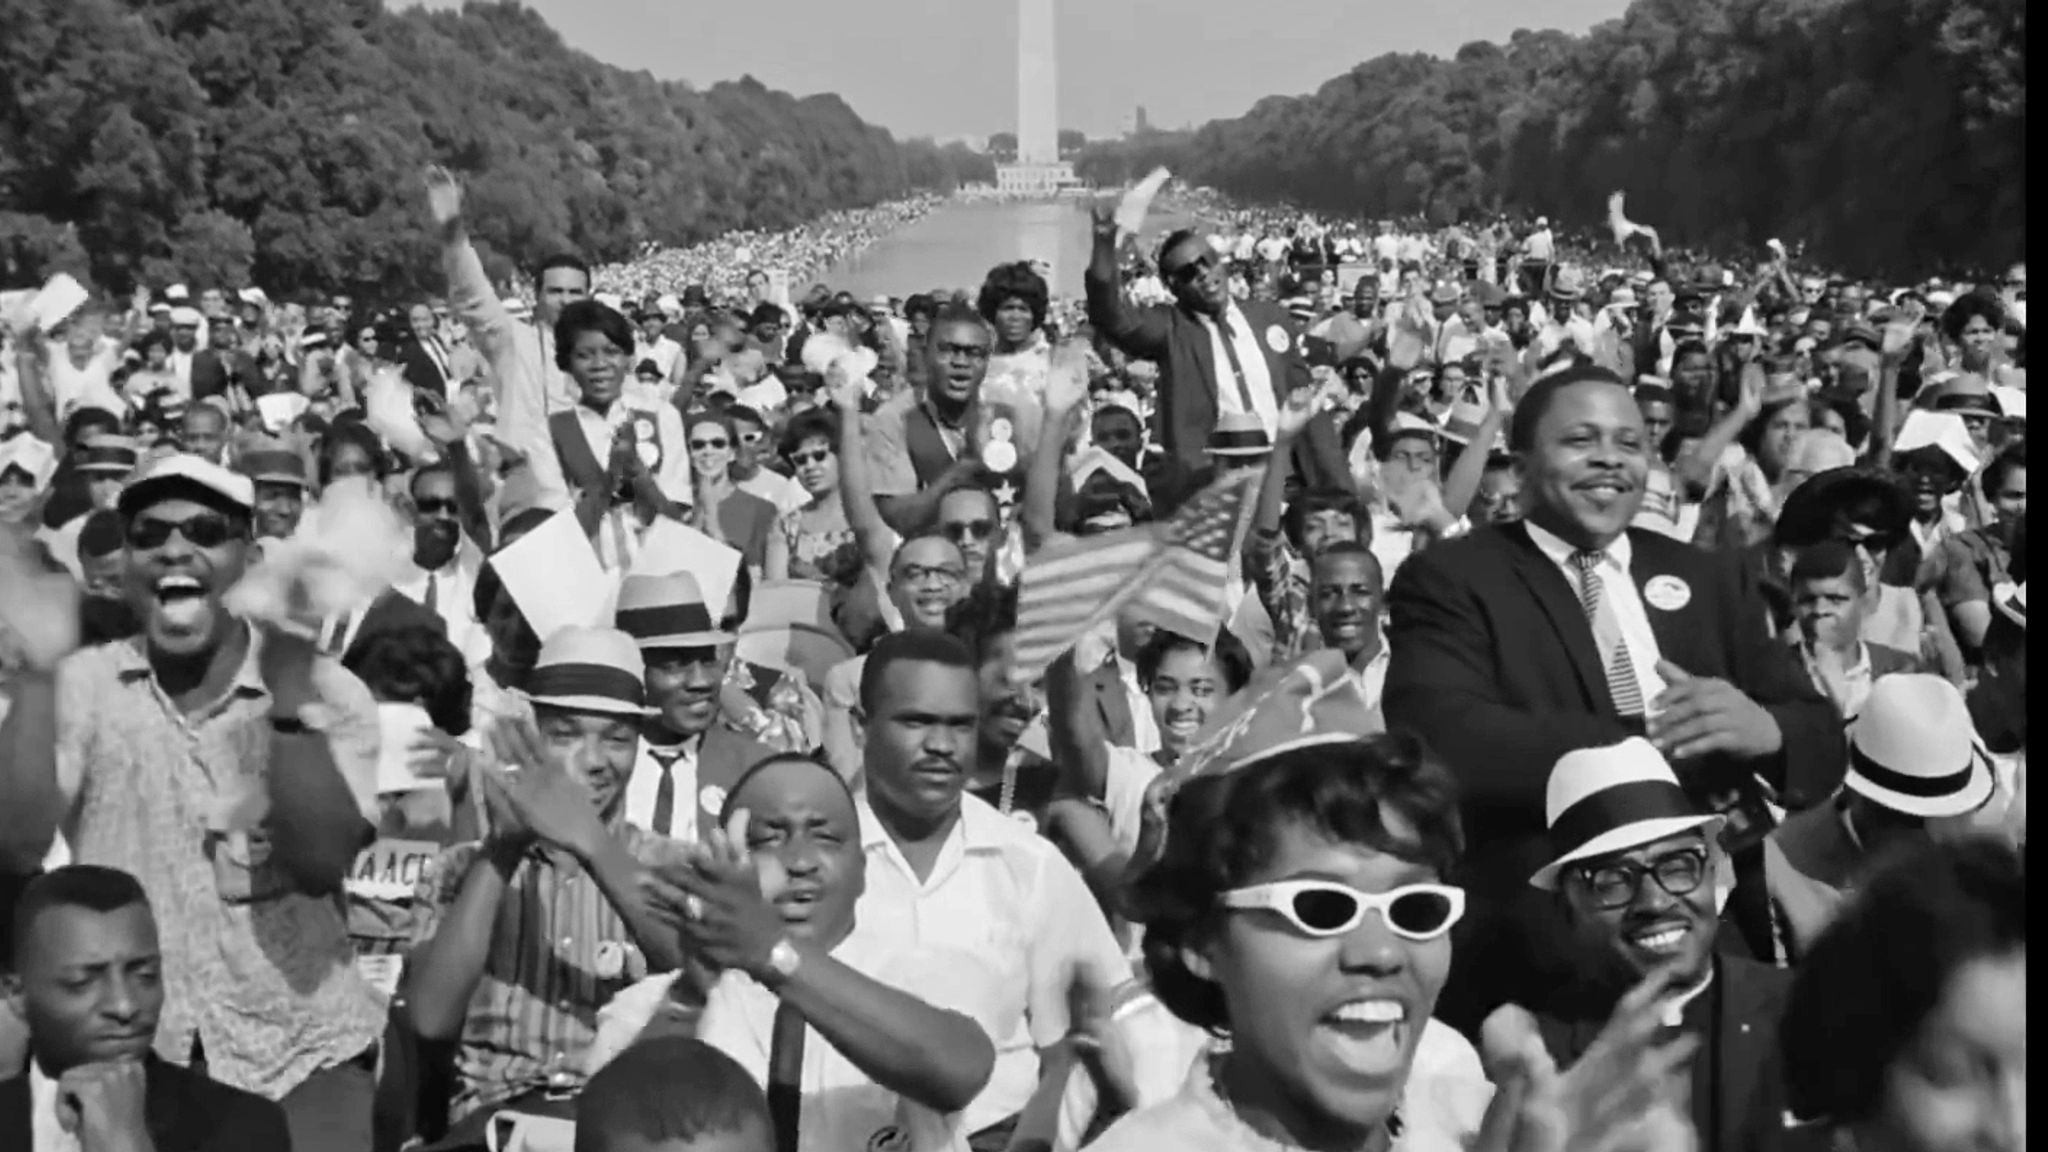 King delivered his famous 'I Have a Dream speech to hundreds of thousands of civil rights supporters in Washington in 1963. Pic: Dogwoof/MLK/FBI